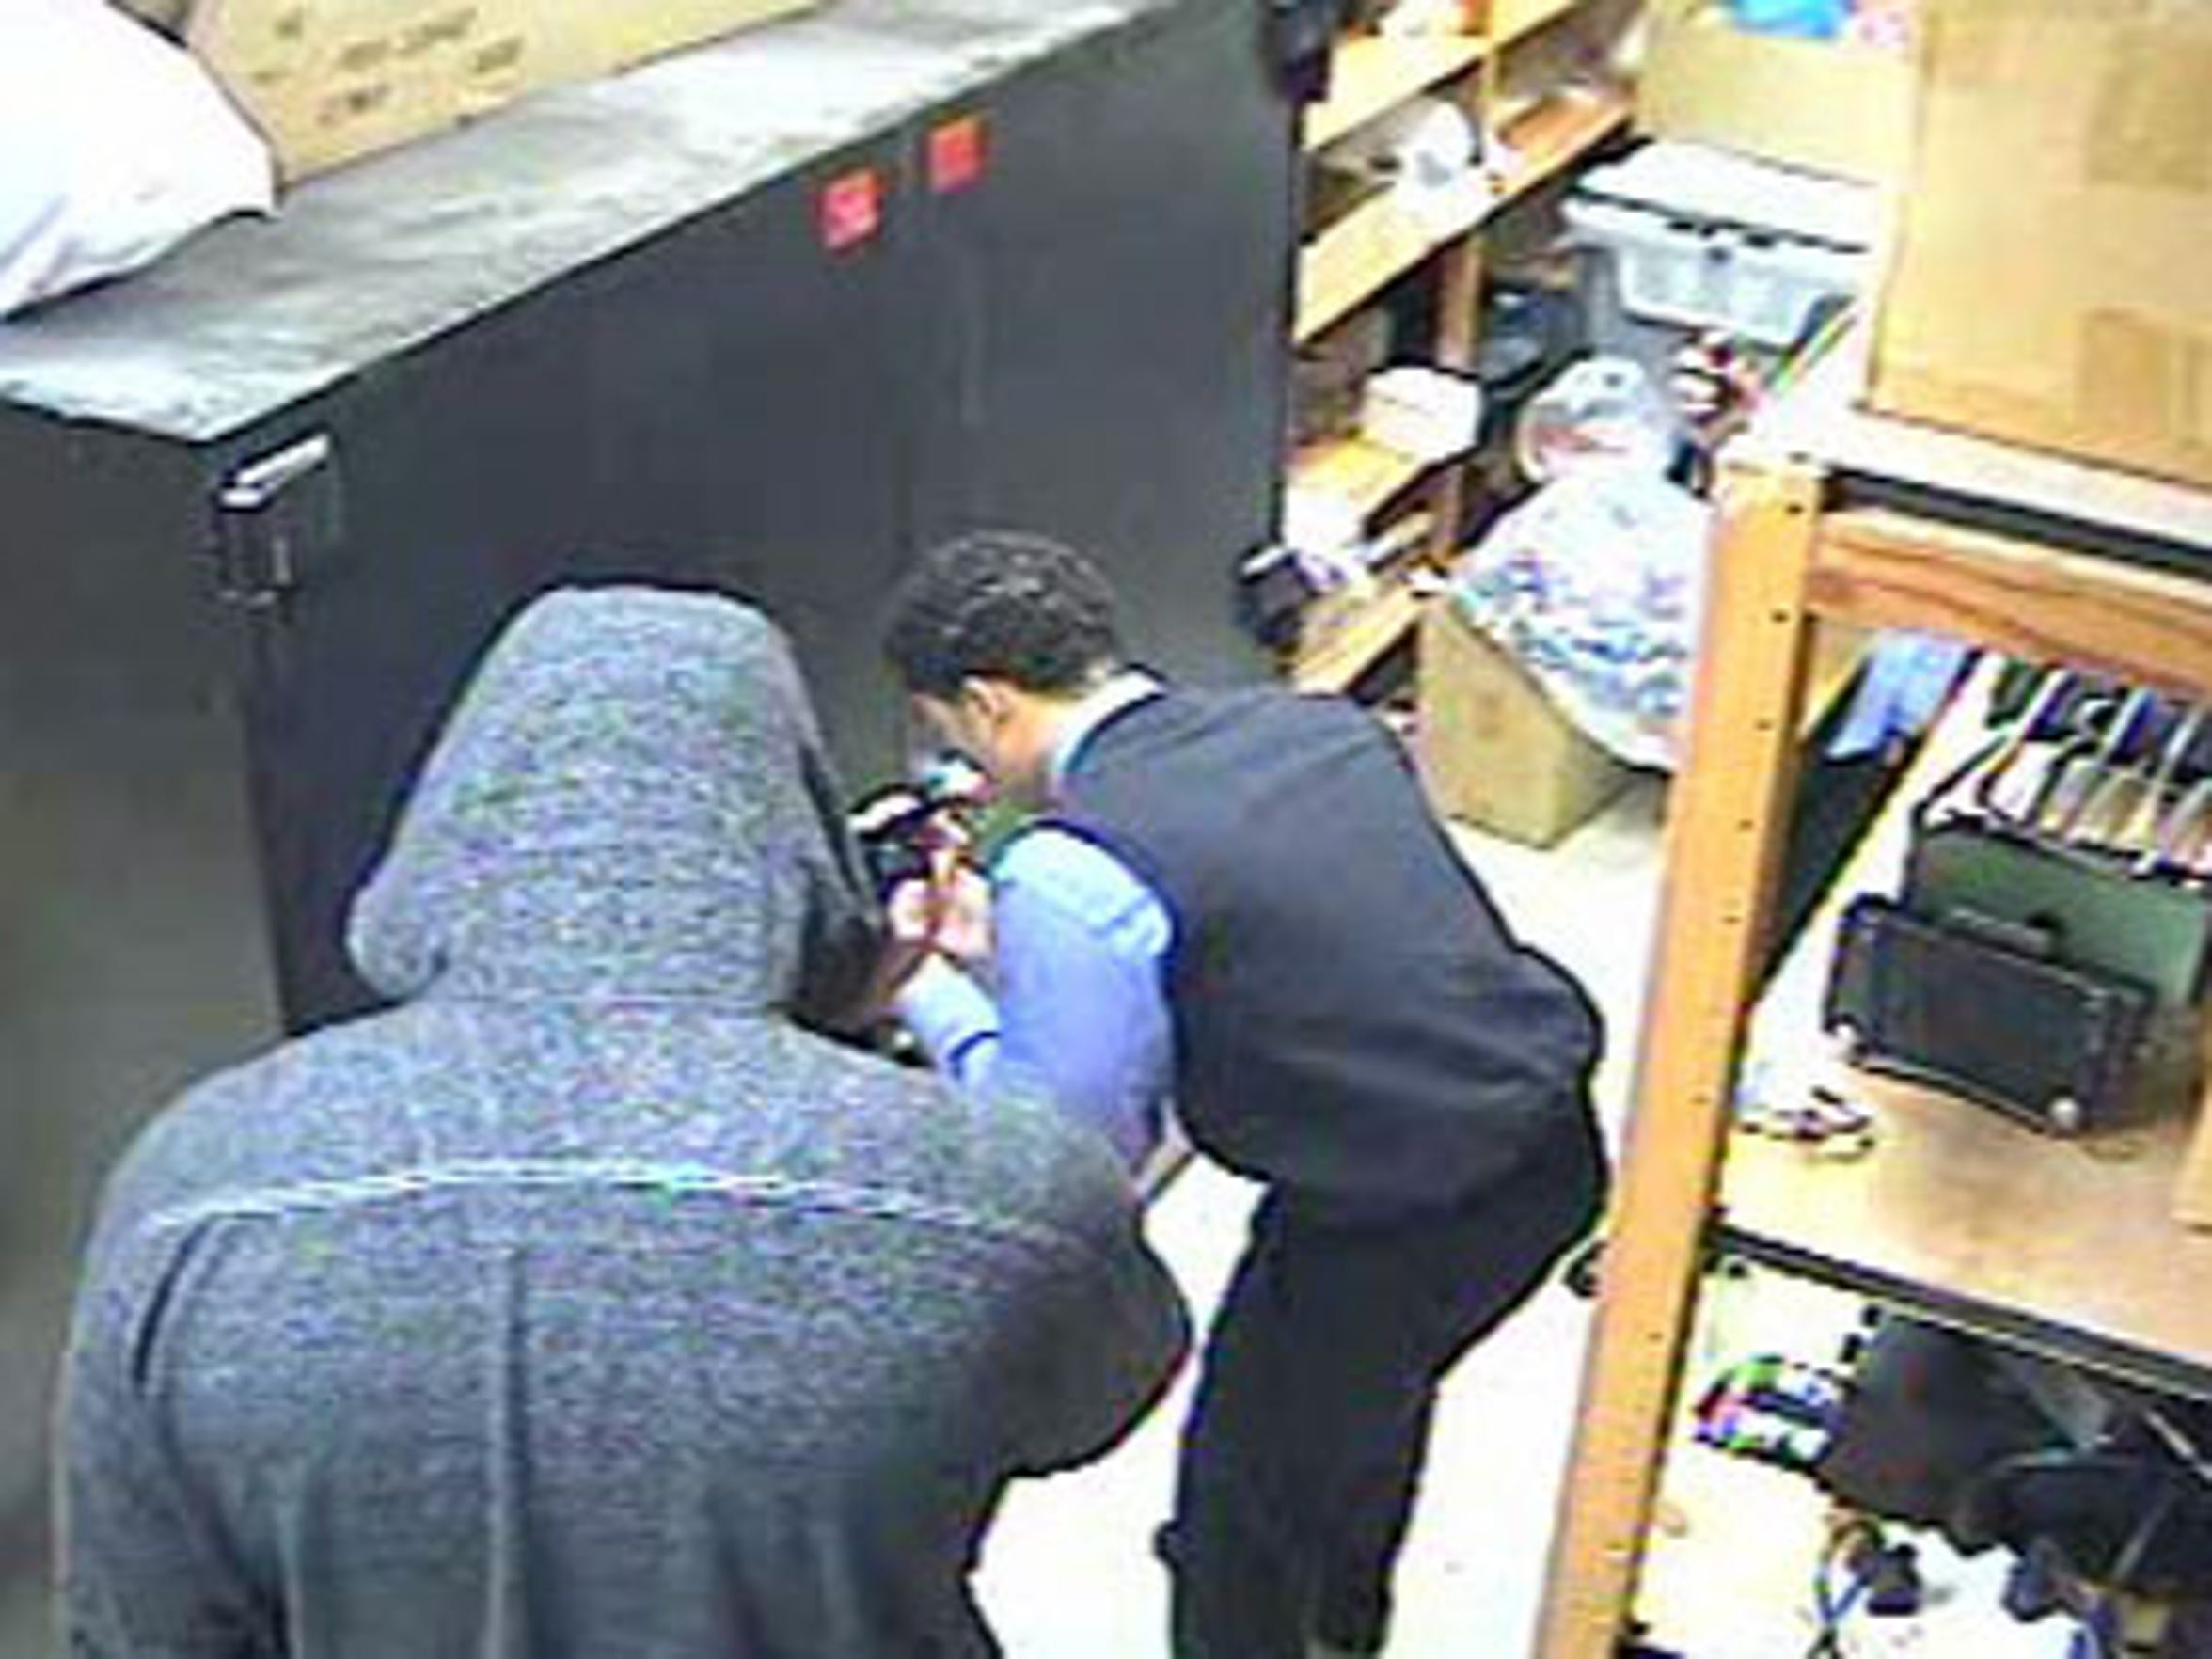 A surveillance-camera image introduced as evidence at trial shows Joel Thomas opening a cabinet in the vault of the Chase bank as Billy Wayne Brymer III holds a gun on him.